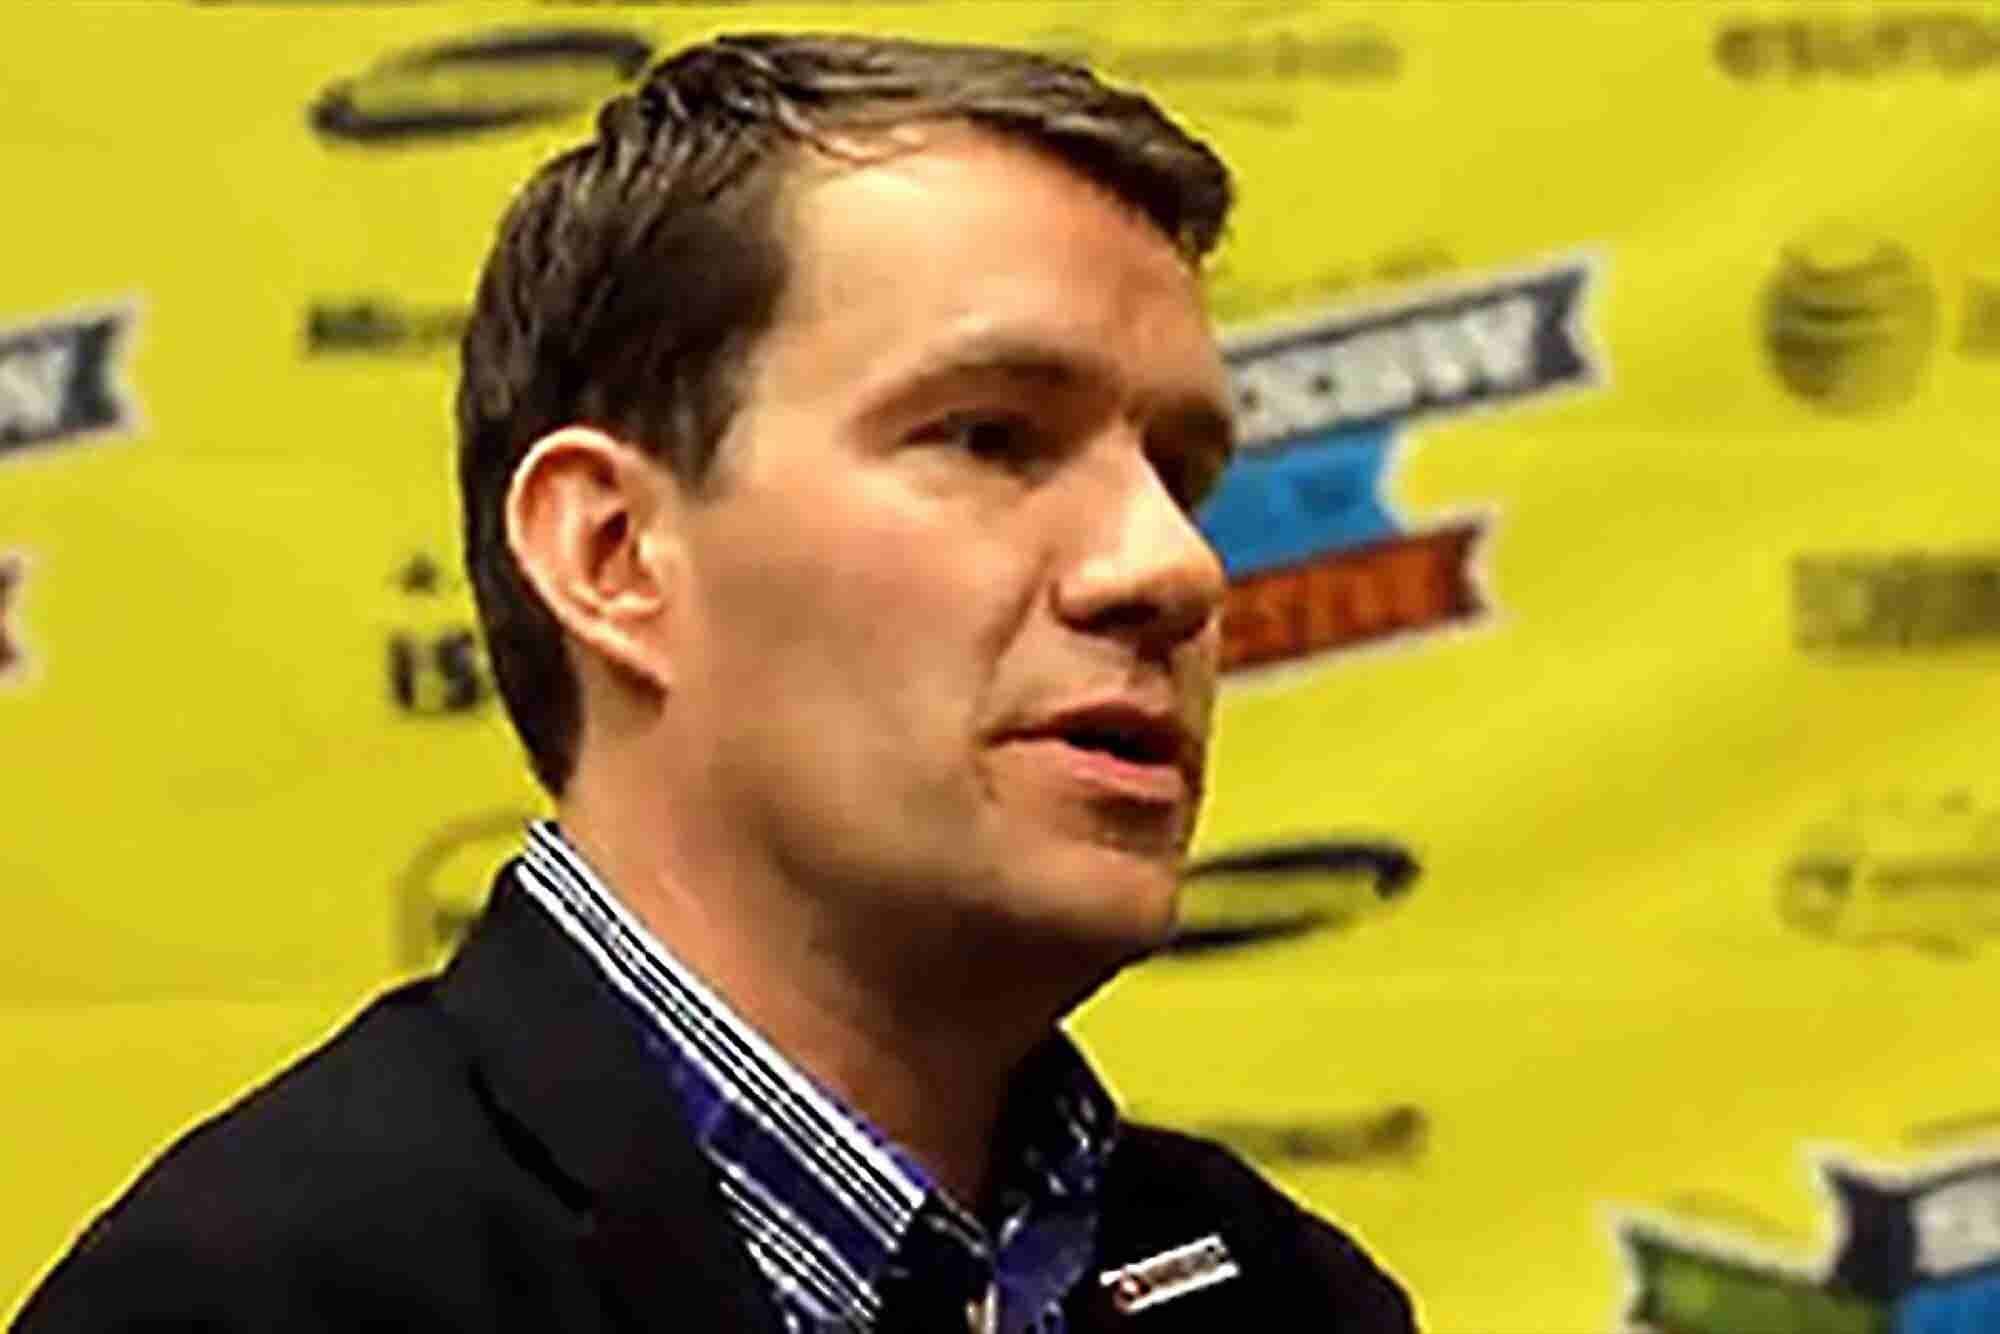 Startup America's Scott Case on the Trends of SXSW 2012